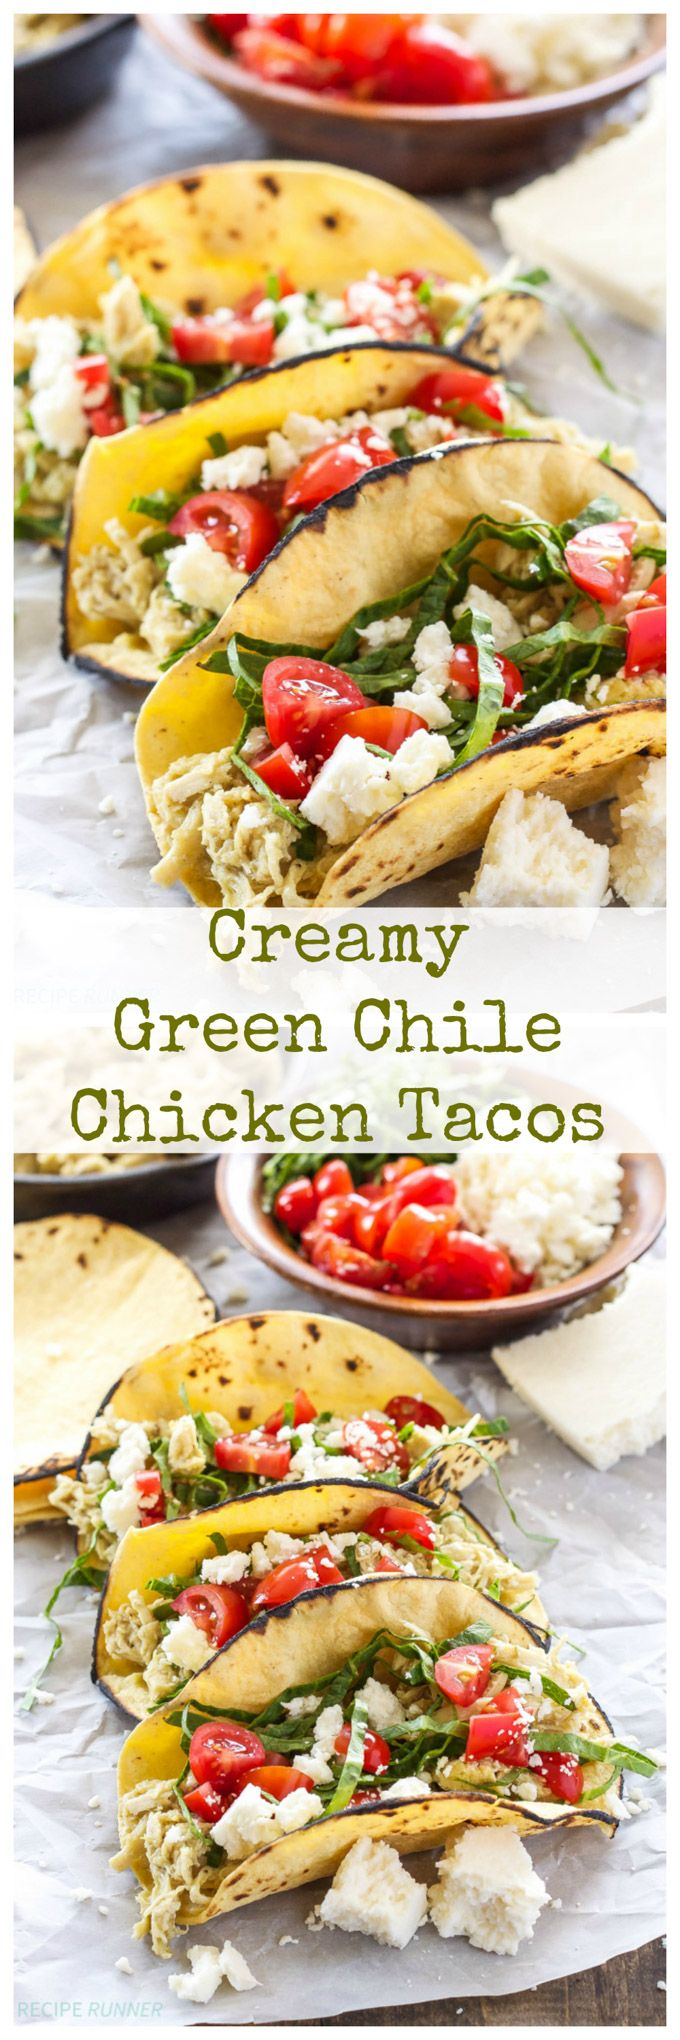 Creamy Green Chile Chicken Tacos   5 ingredients and a slow cooker are all you need for this delicious taco meat!